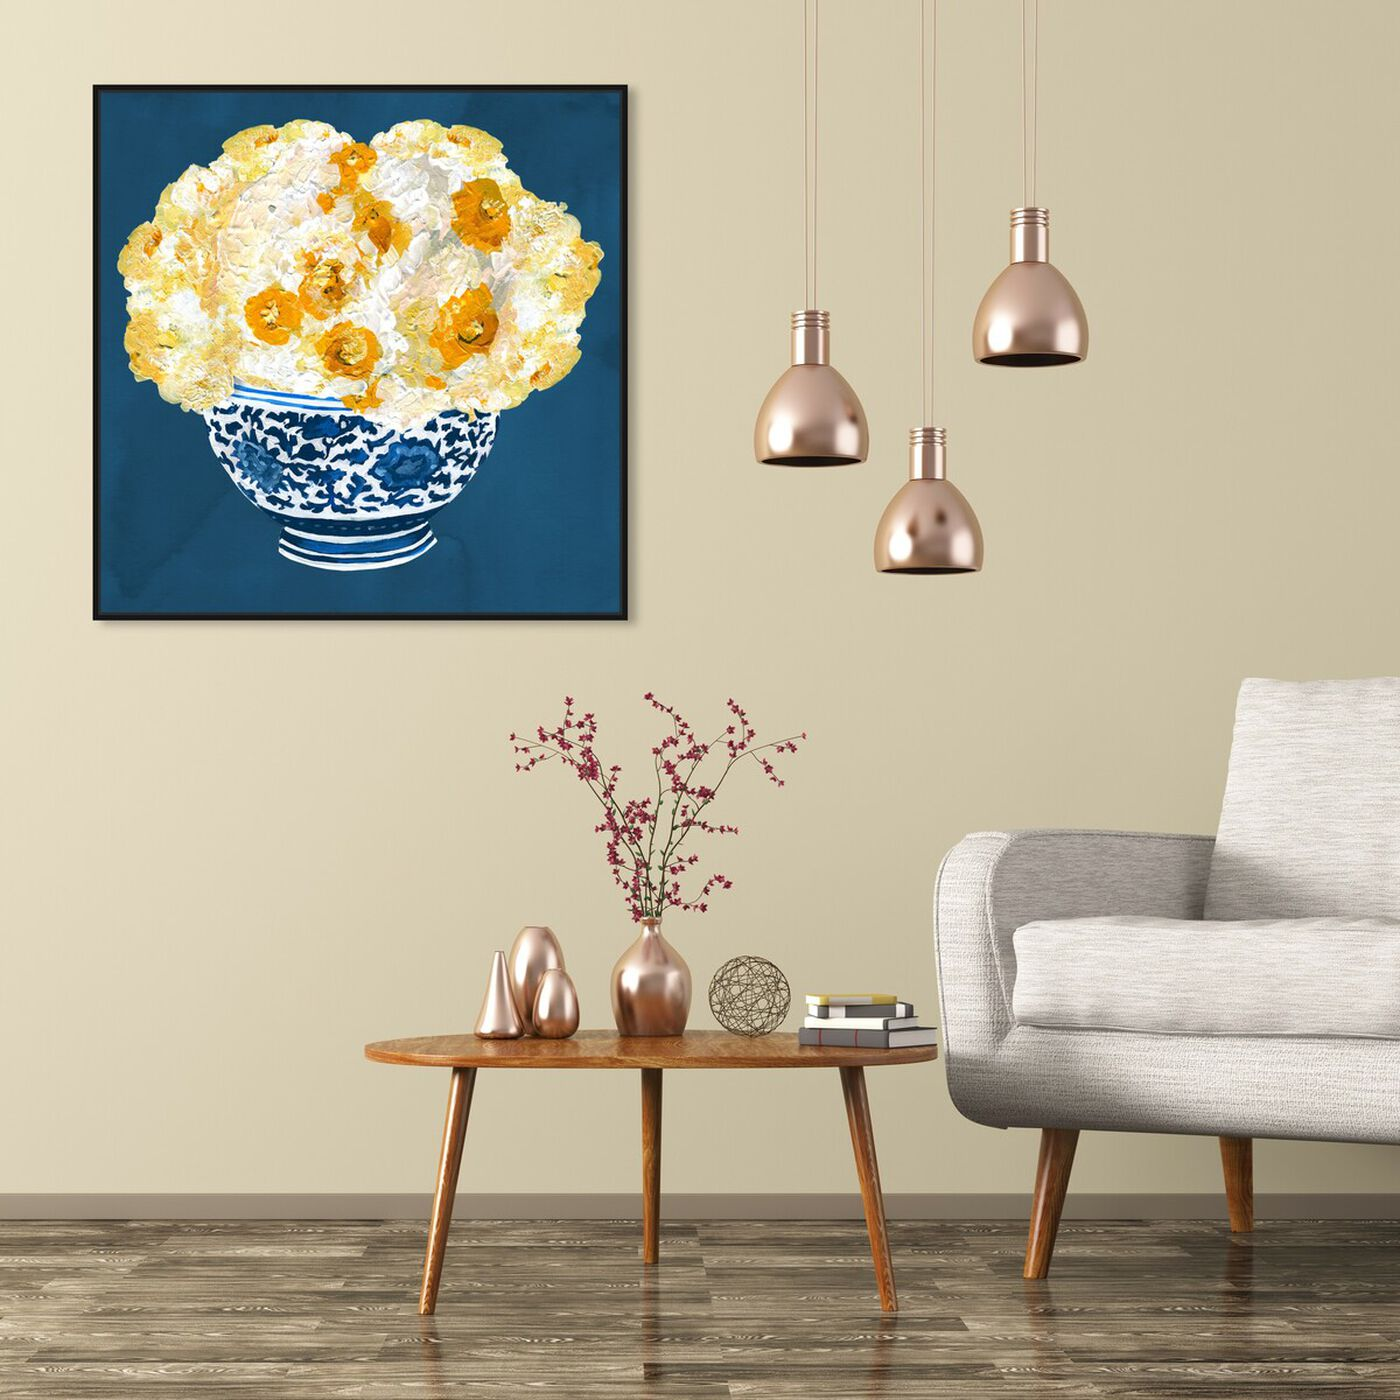 Hanging view of Blue and Yellow Vase featuring floral and botanical and florals art.